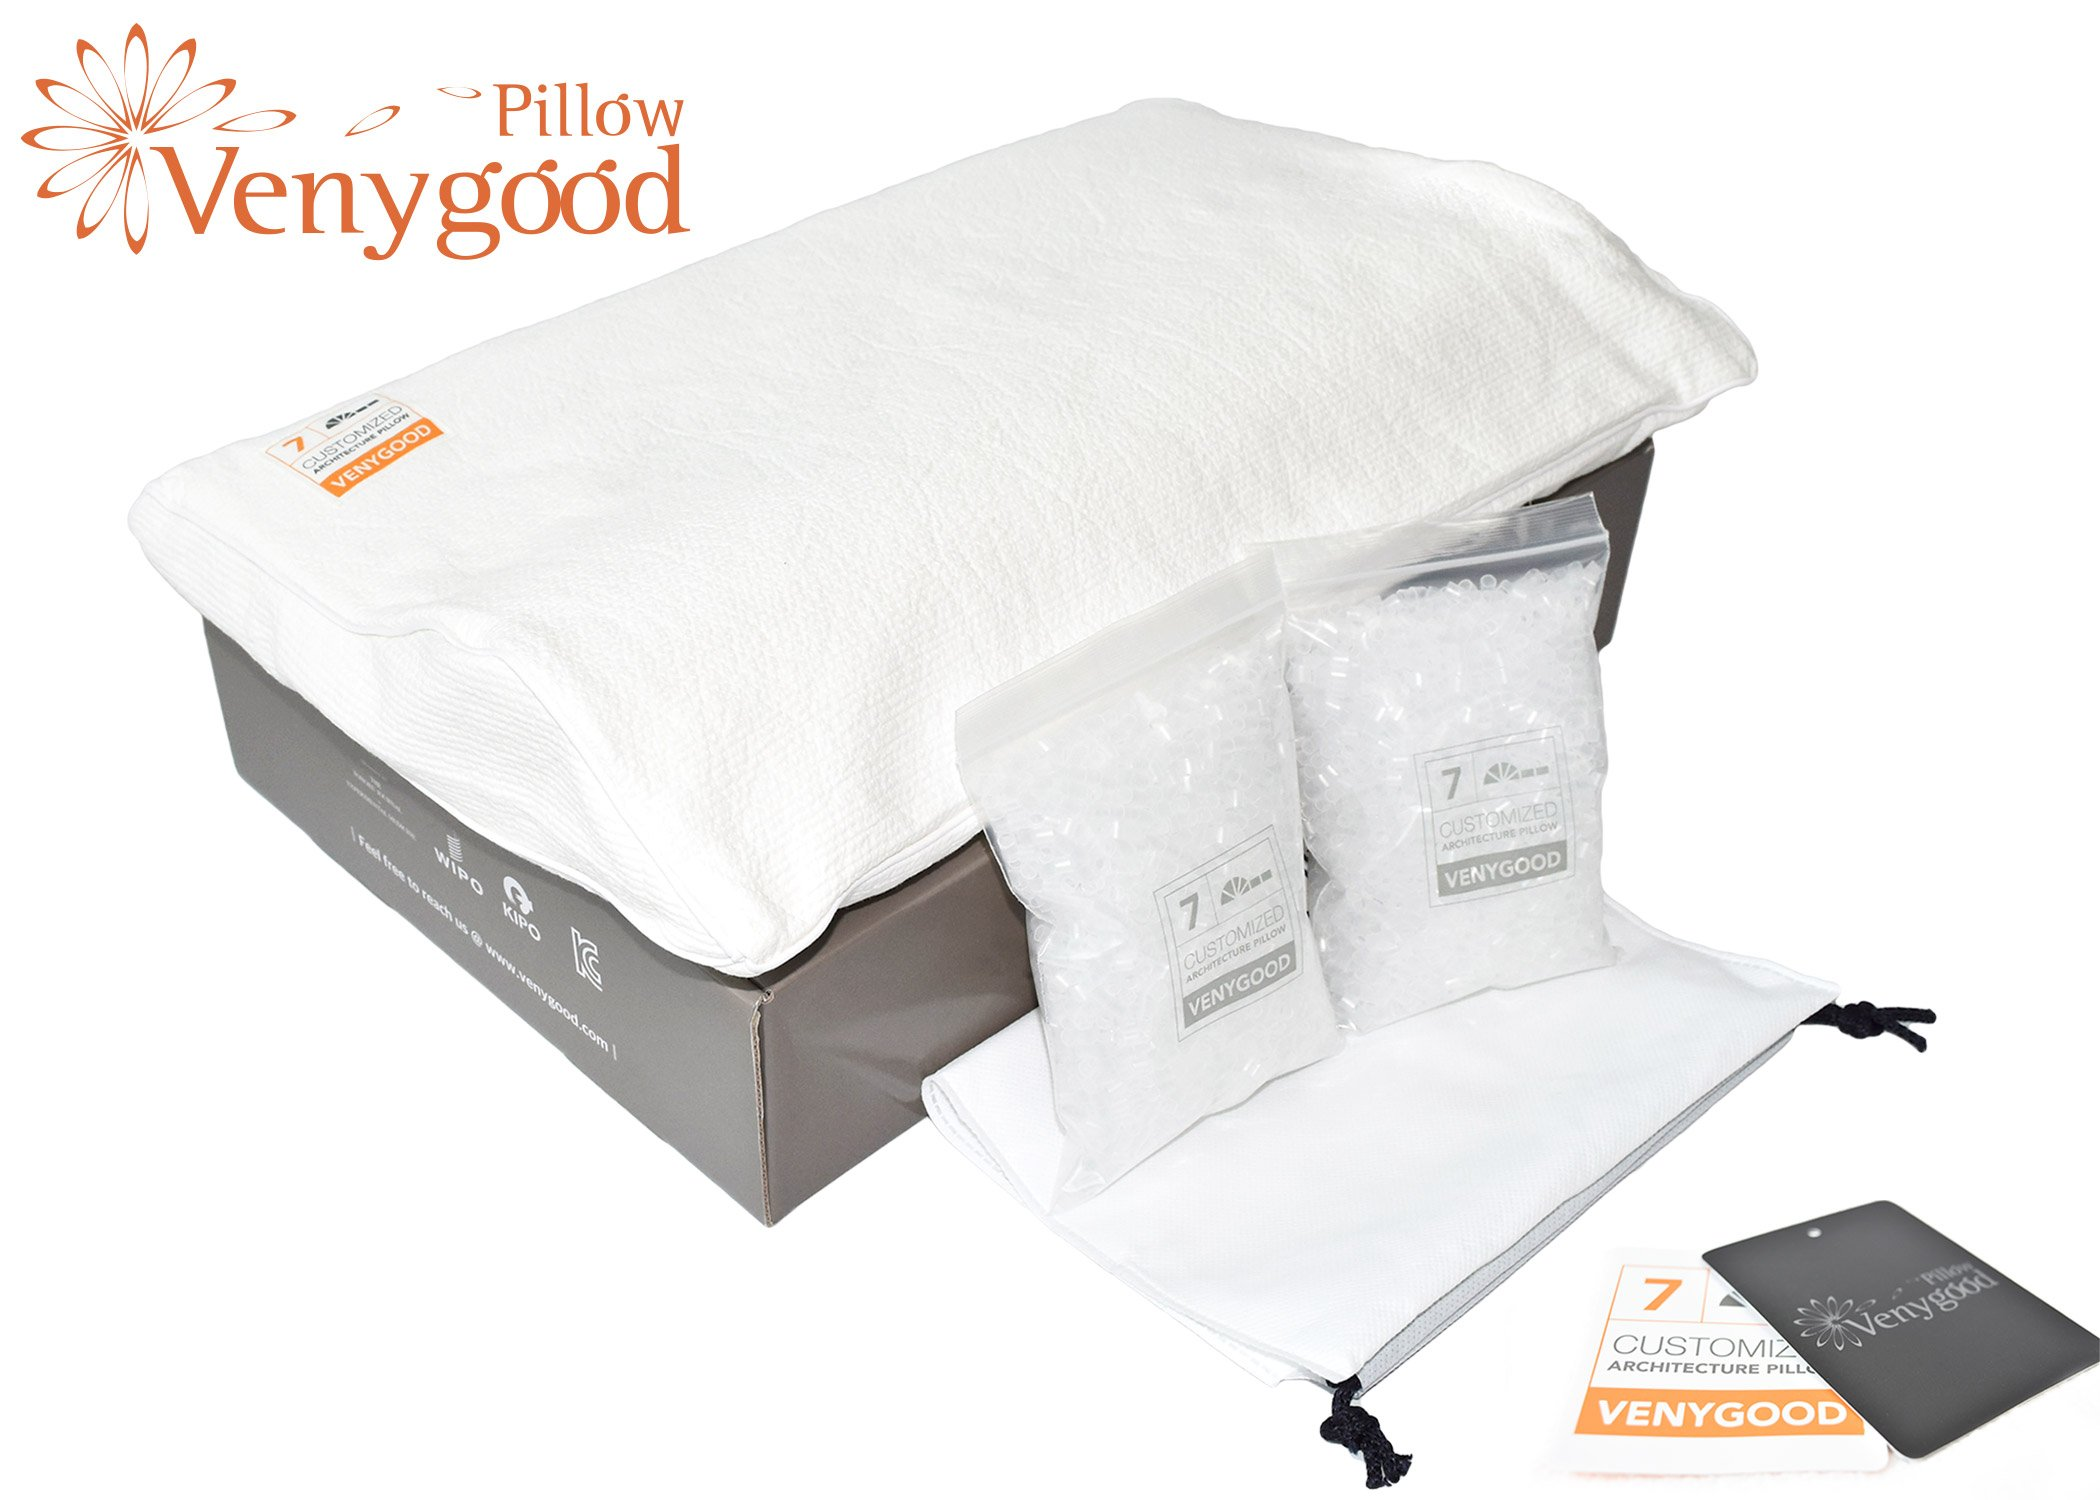 Venygood Premium - Hilton Conrad Pillow, SCI Proven Cure for Neck N Back Pain. Microbead for Therapeutic Chiropractic Good Sleep Purposes. Real Innovations, Migraine Gone! Cervical Memory Foam Pillows